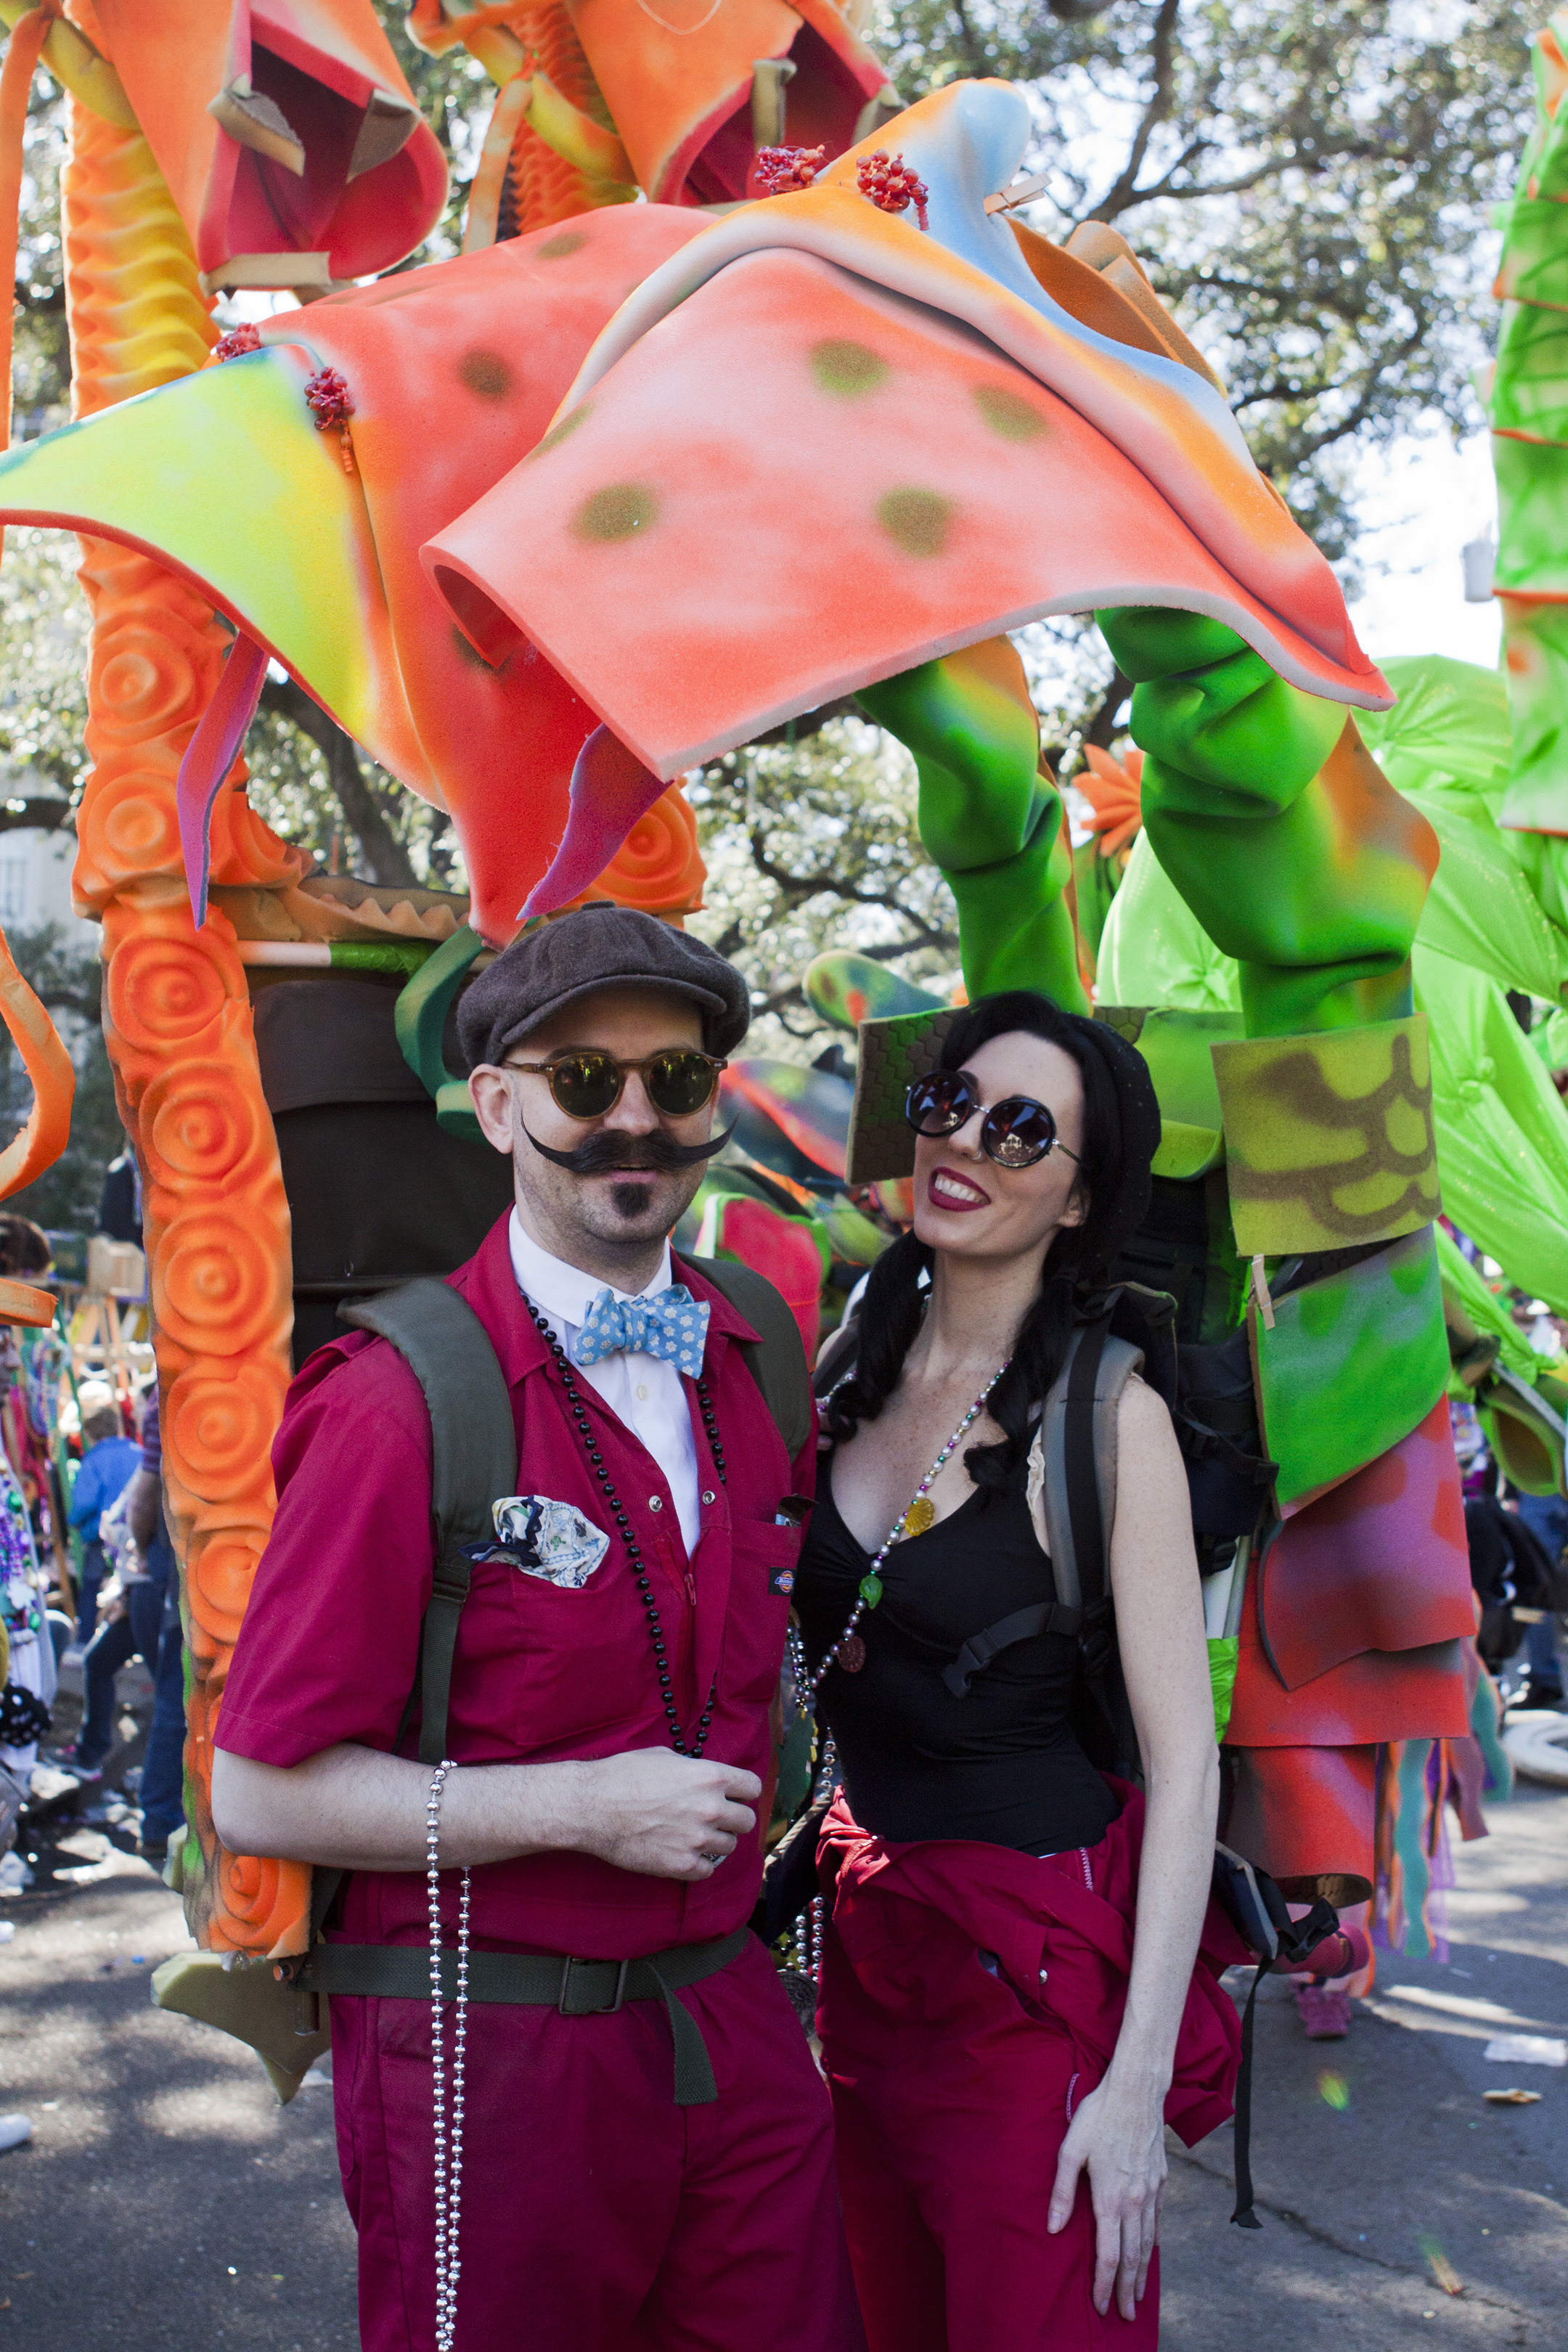 """Two members of the """"Dragons of New Orleans"""" walking krewe displayed their homemade costumes during their participation in the Tucks Parade."""